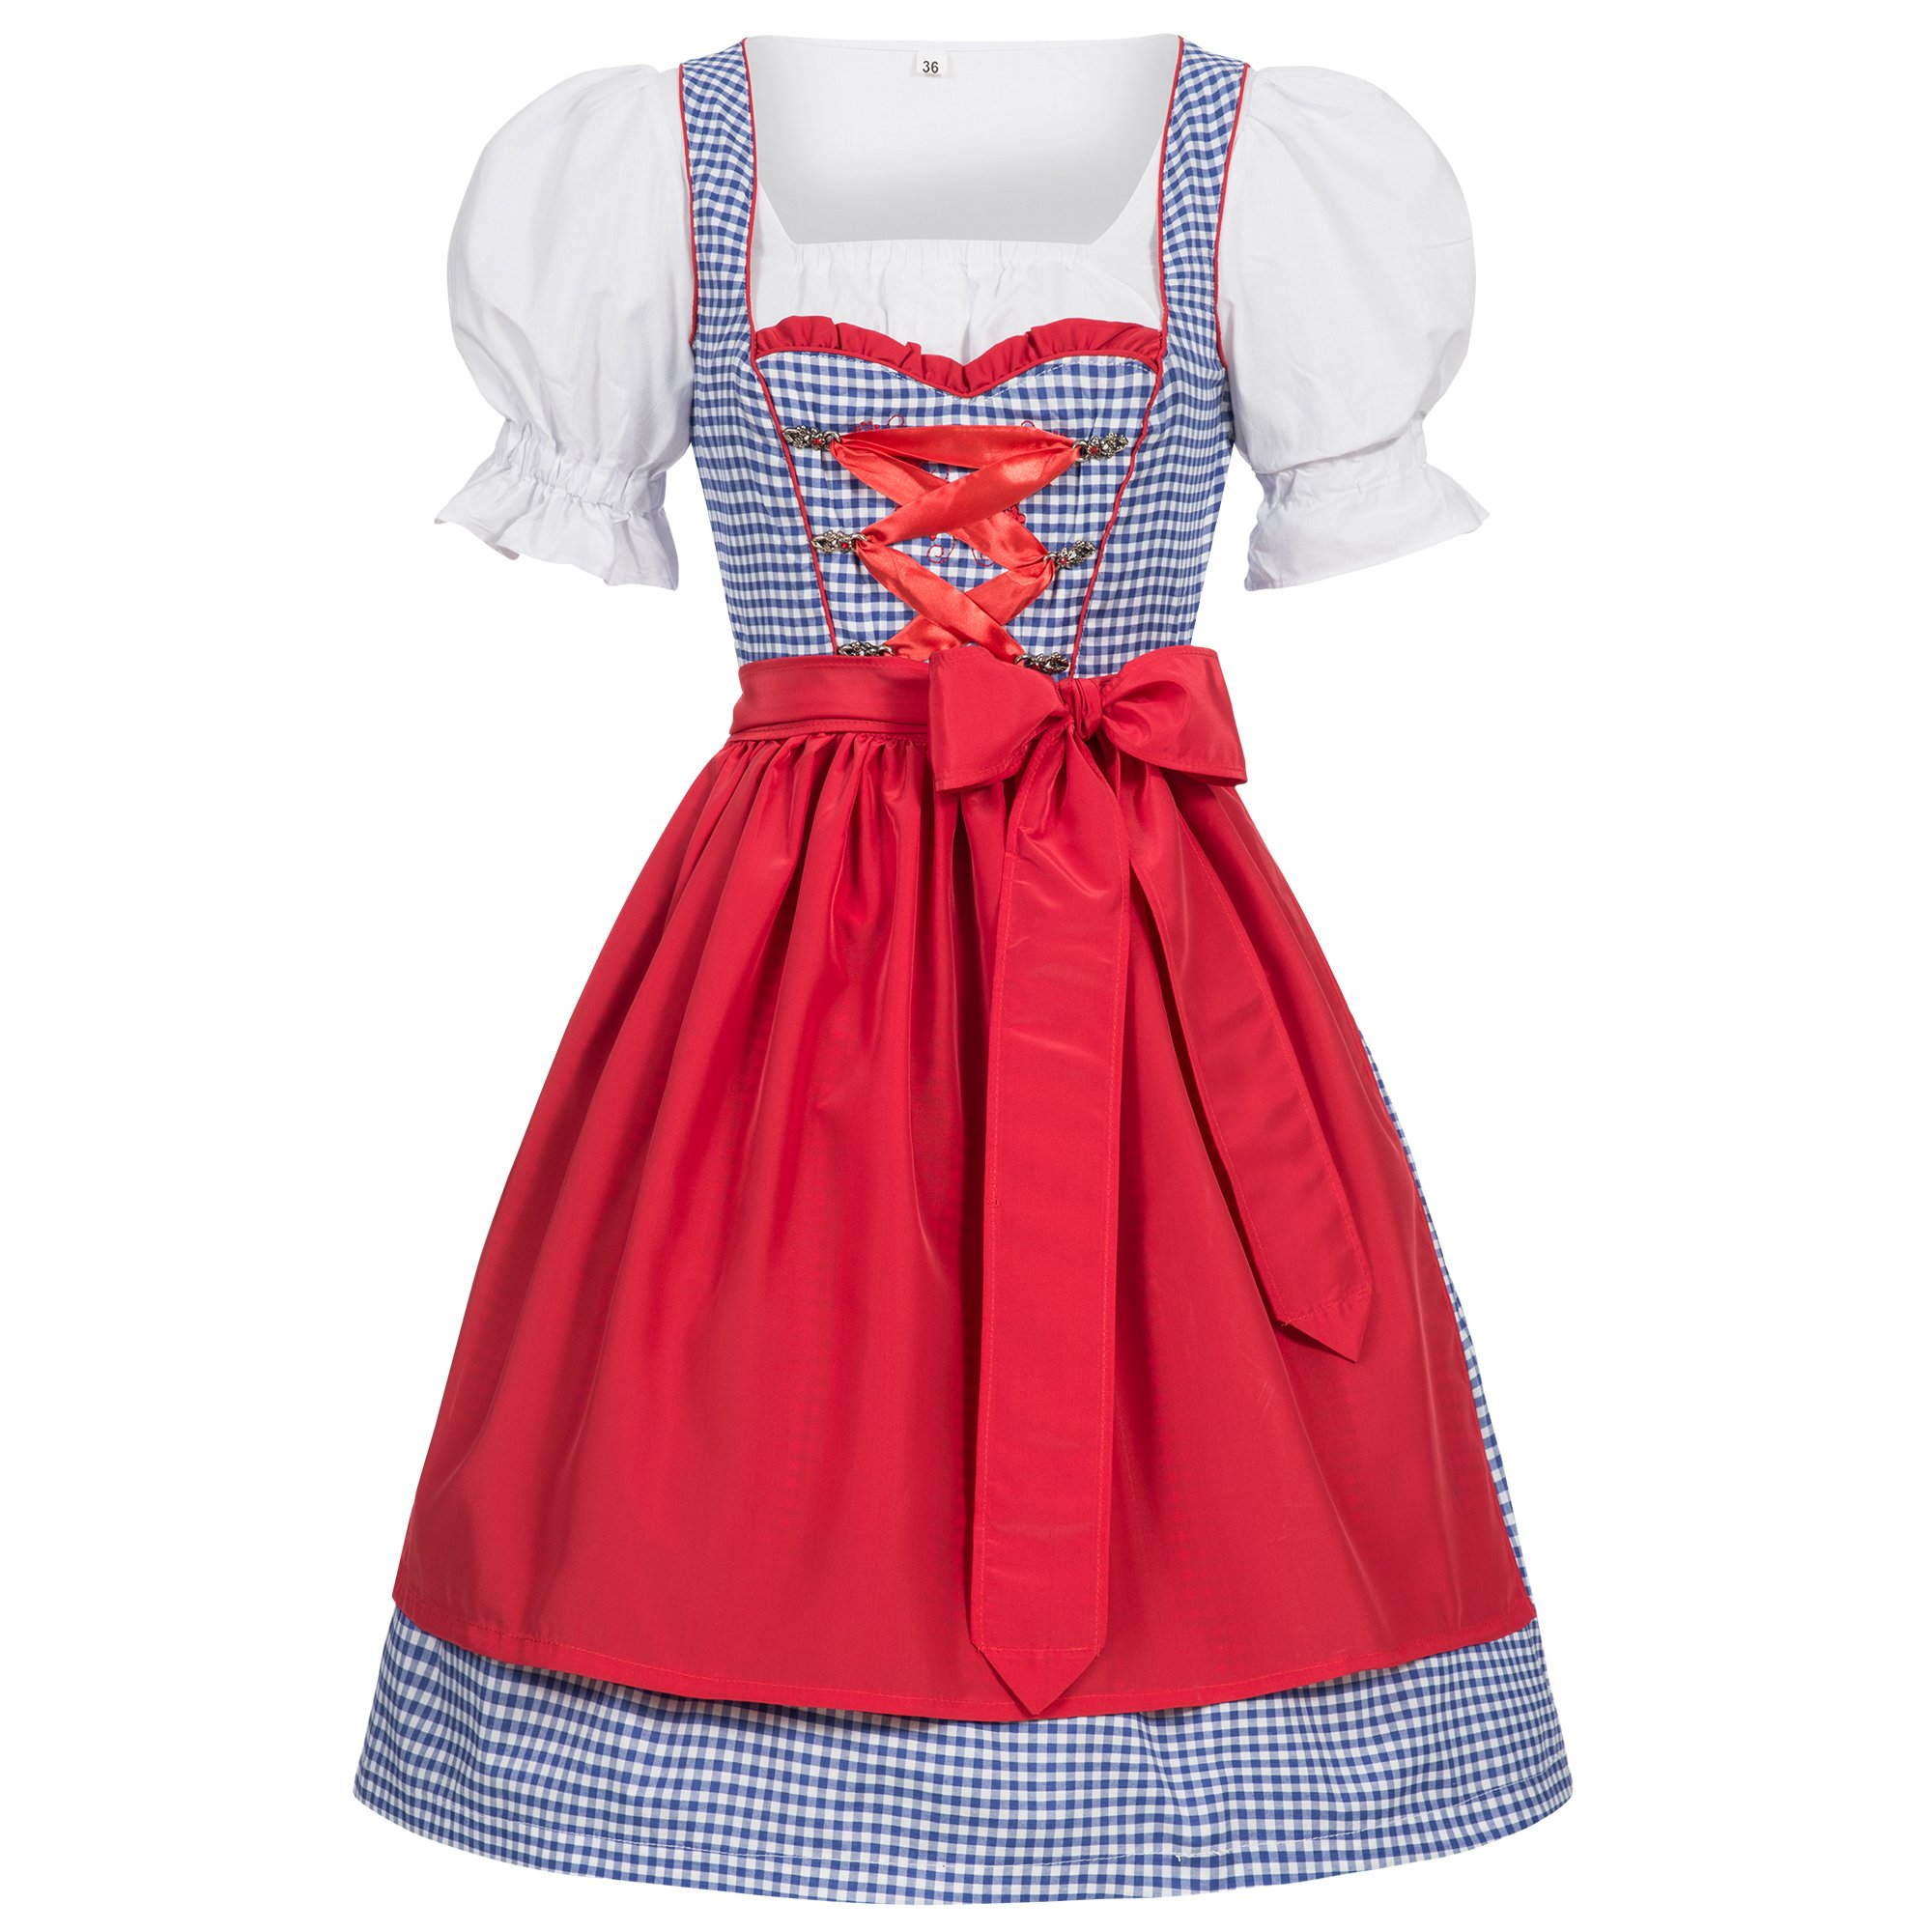 Gaudi-leathers Traditional Women's German Dirndl Dress 3 Pieces Checkered, Costumes for Bavarian Oktoberfest, Carnival or Halloween, blue with red apron 40 by Gaudi-leathers